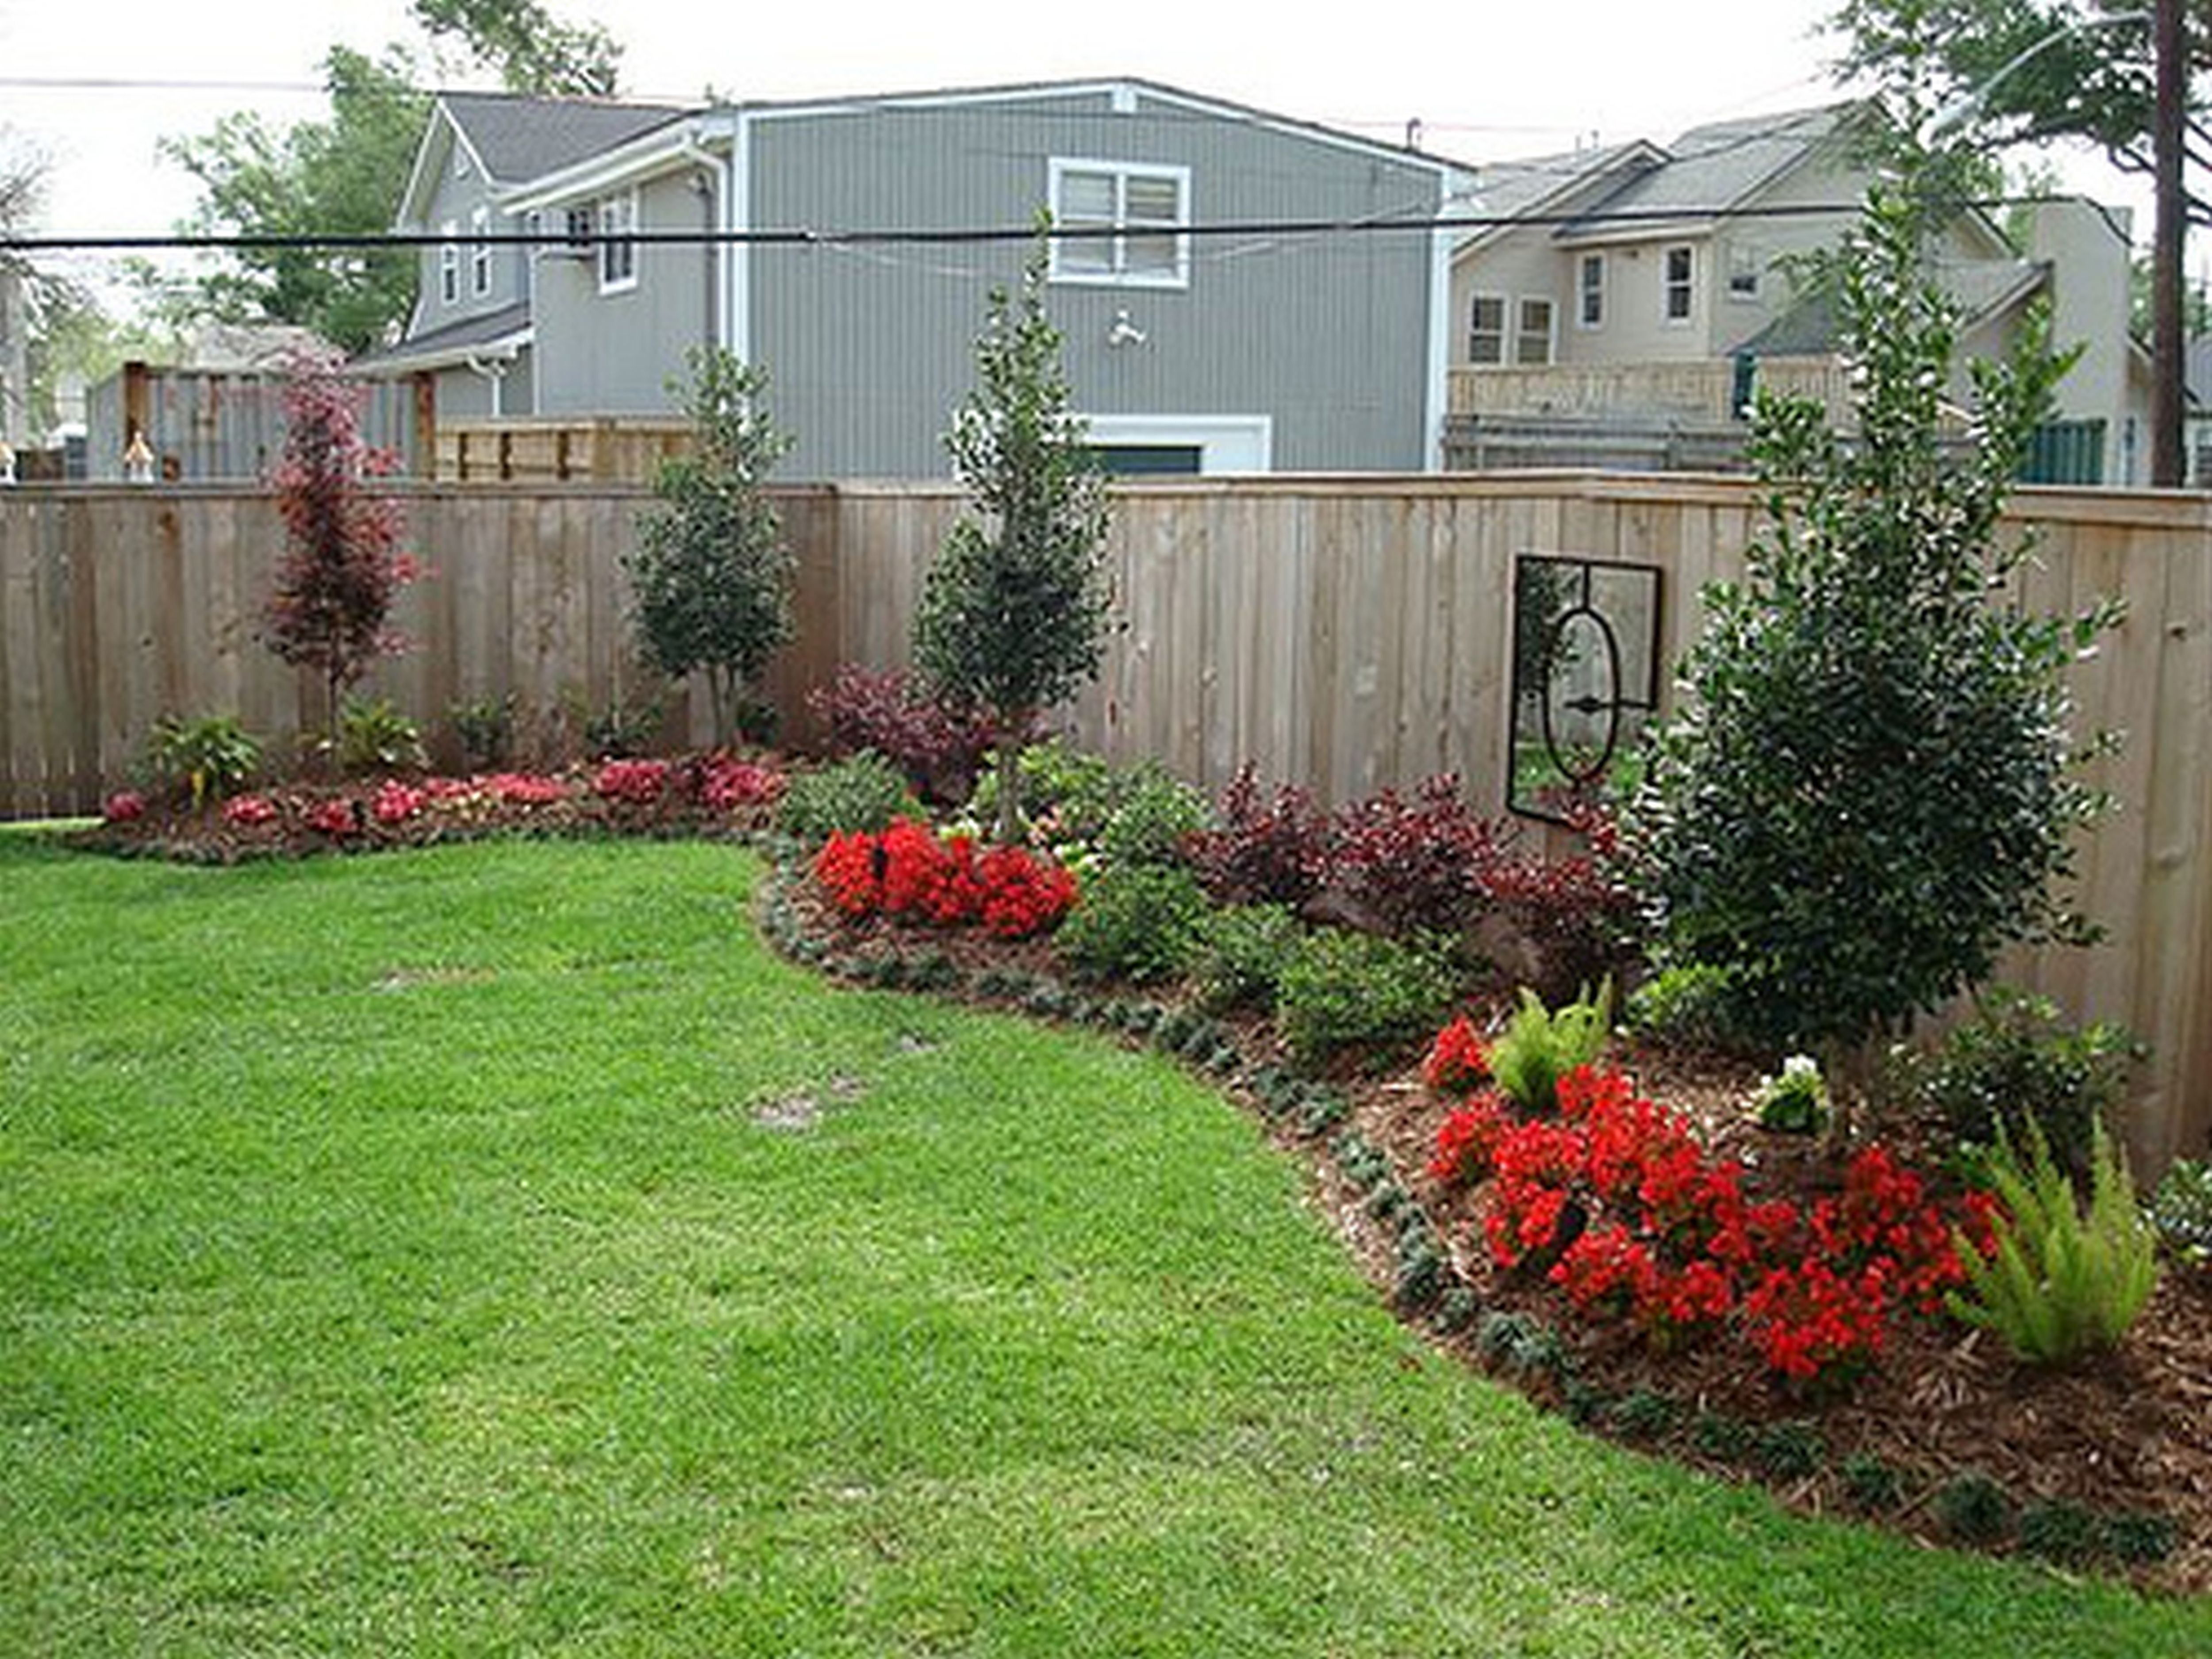 Backyard Landscape Designs With Landscape Design Firms With Easy in 13 Genius Concepts of How to Craft Small Backyard Landscaping Ideas